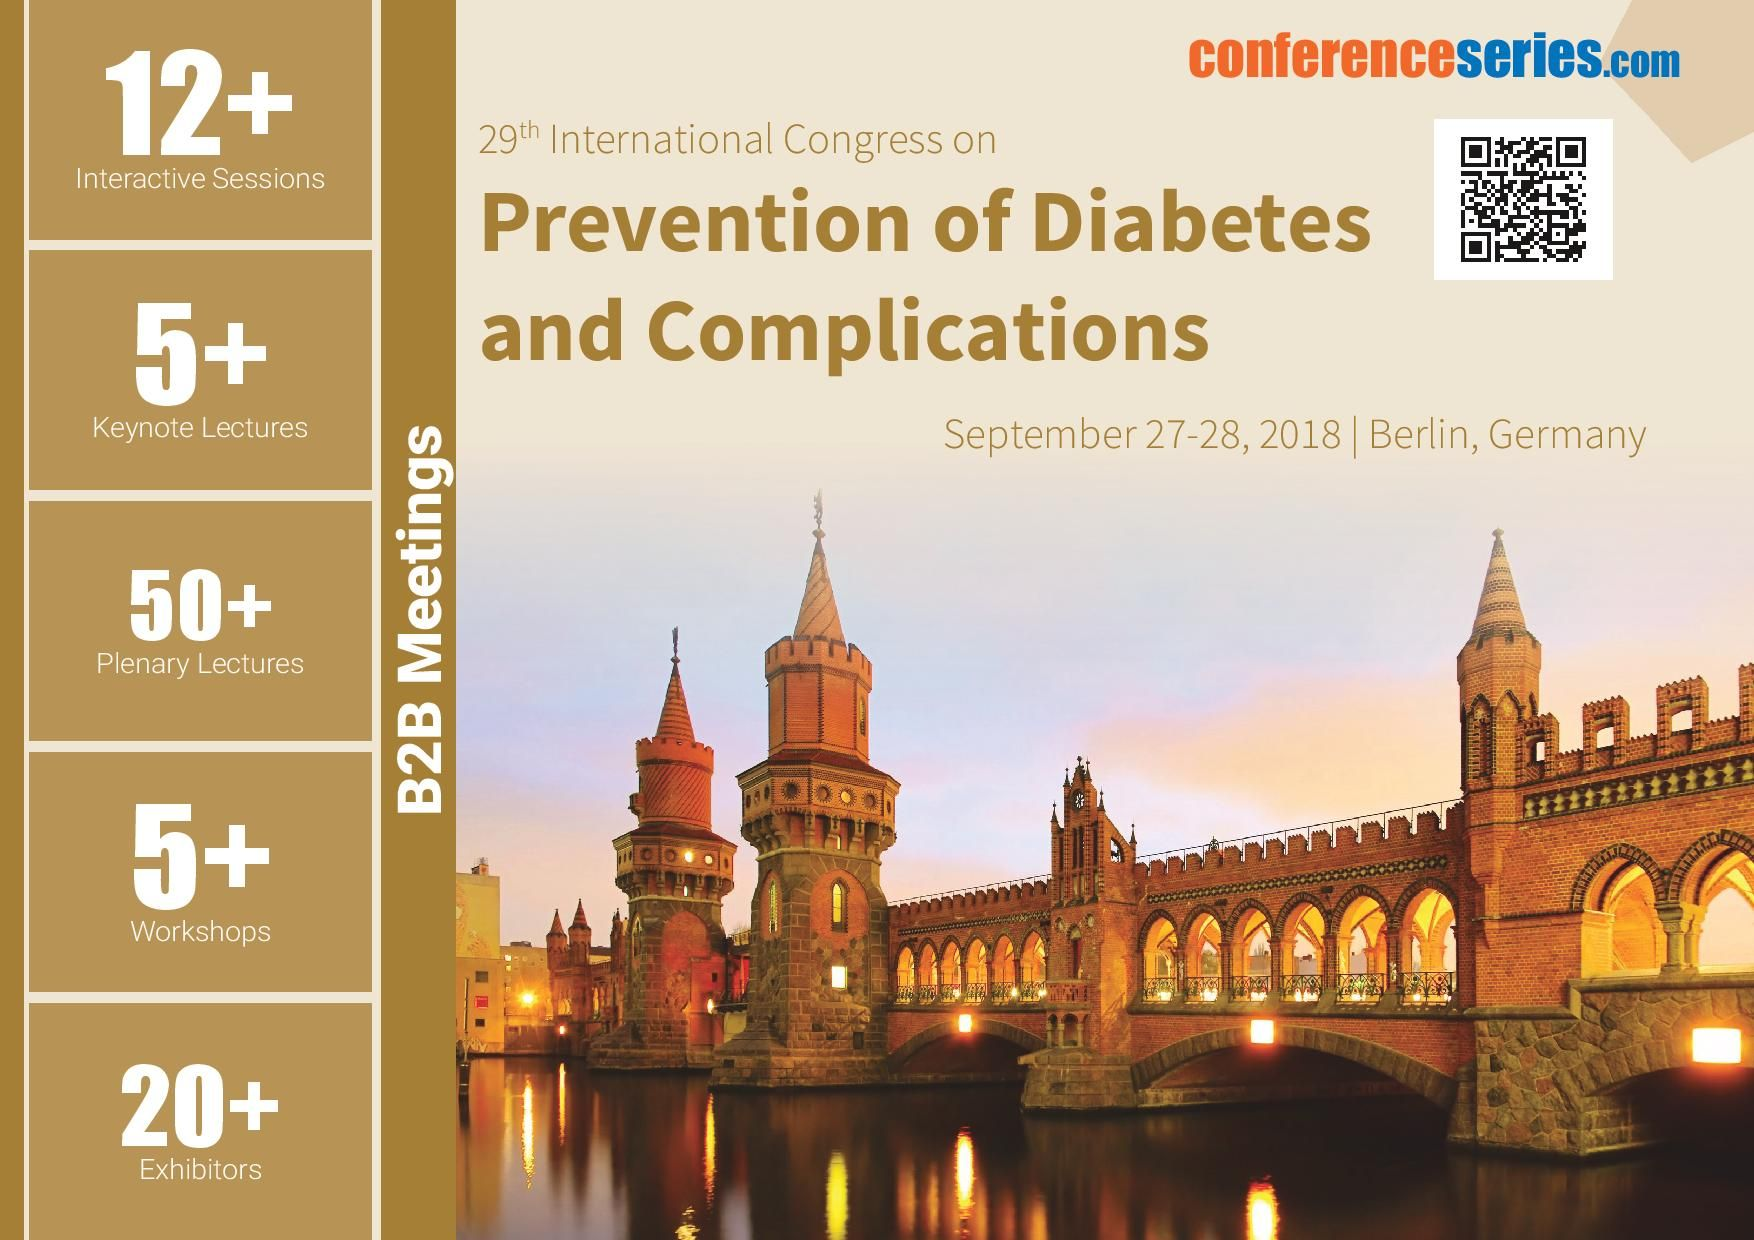 29th International Congress on Prevention of Diabetes and